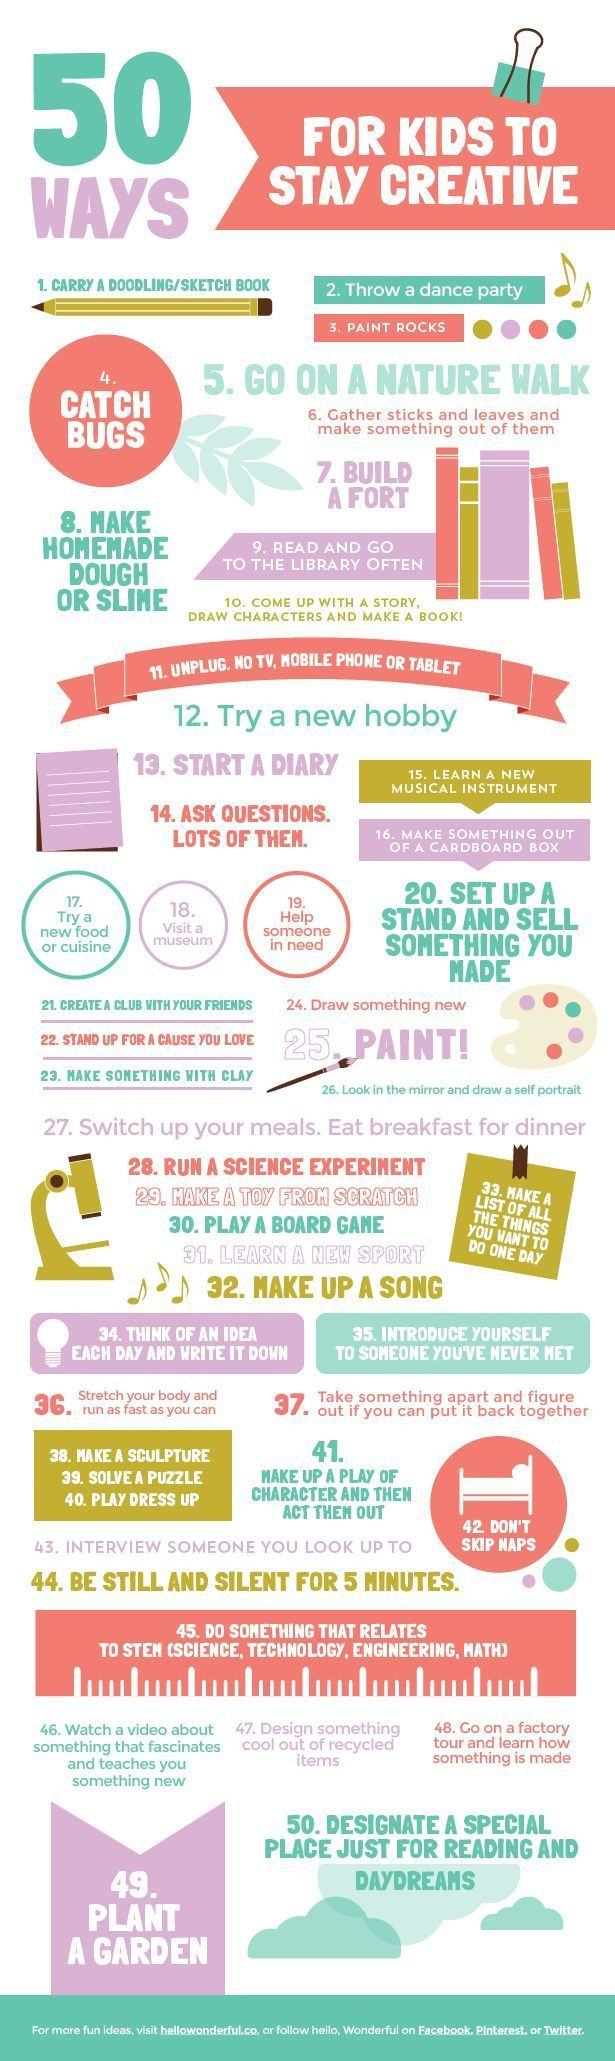 1000 images about babysitting activities creative 50 ways for kids to stay creative kids learn by example and by visual learning